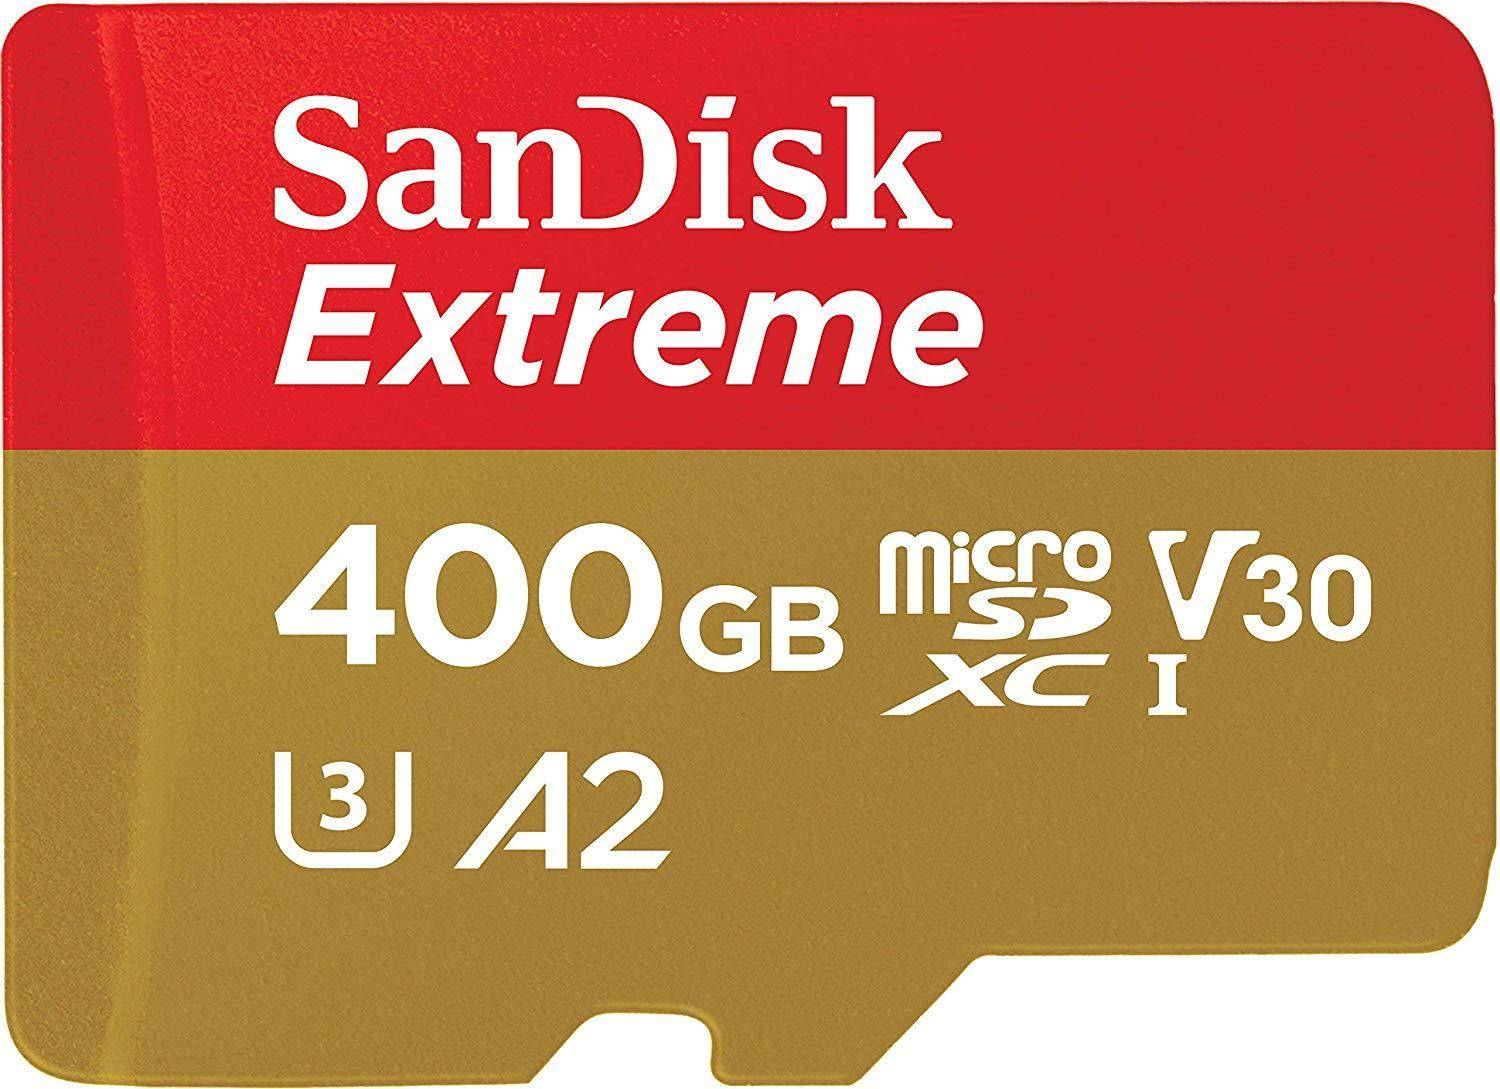 SanDisk Extreme micro SDXC UHS-I 400 GB Memory Card with Adapter (SDSQXA1-400G-GN6MA) zoom image